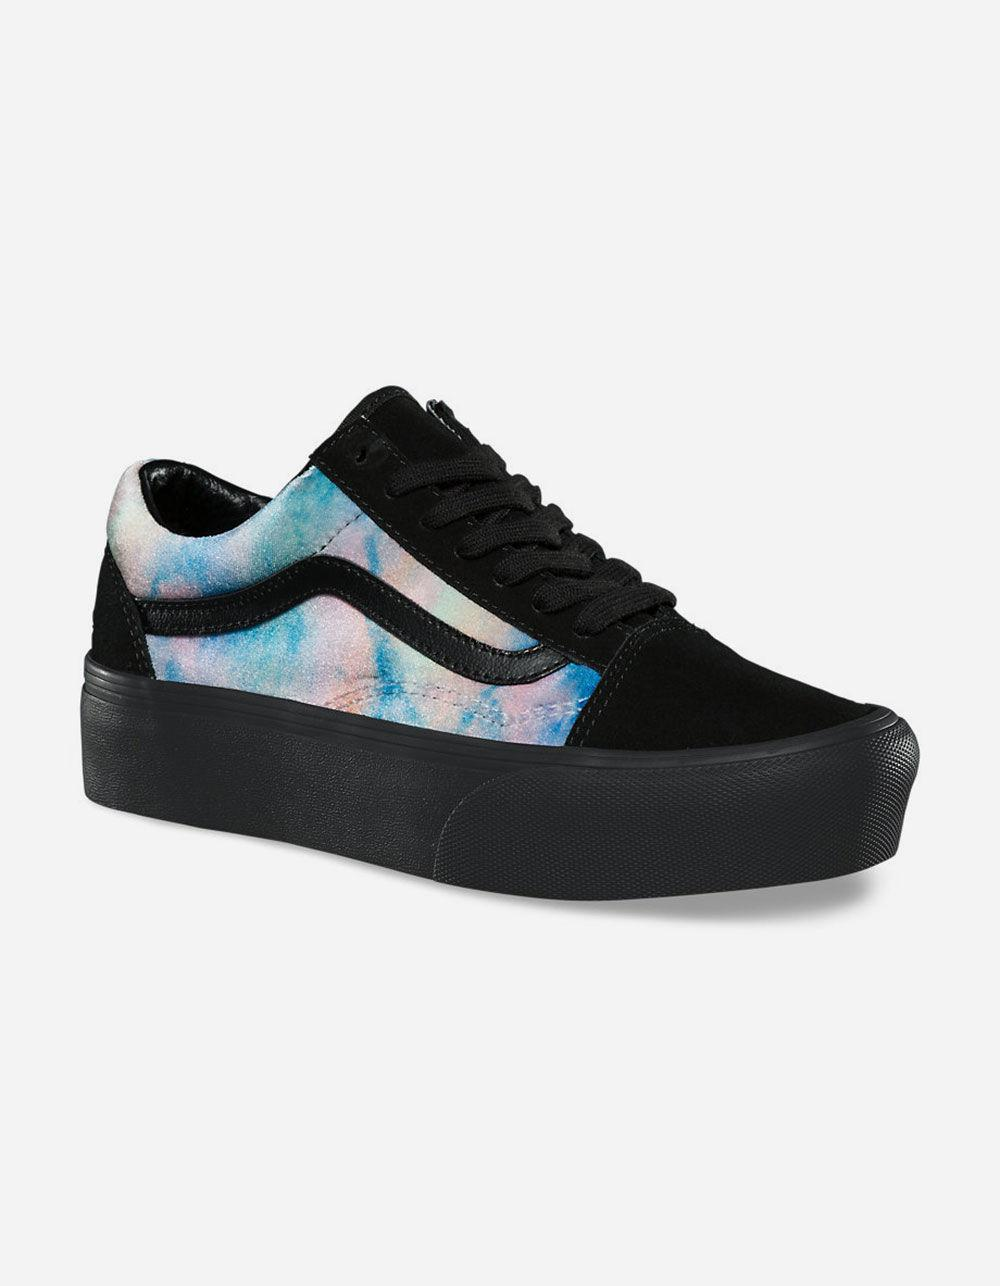 57410f6ac3d7 Lyst - Vans Velvet Tie-dye Old Skool Platform Womens Shoes in Black